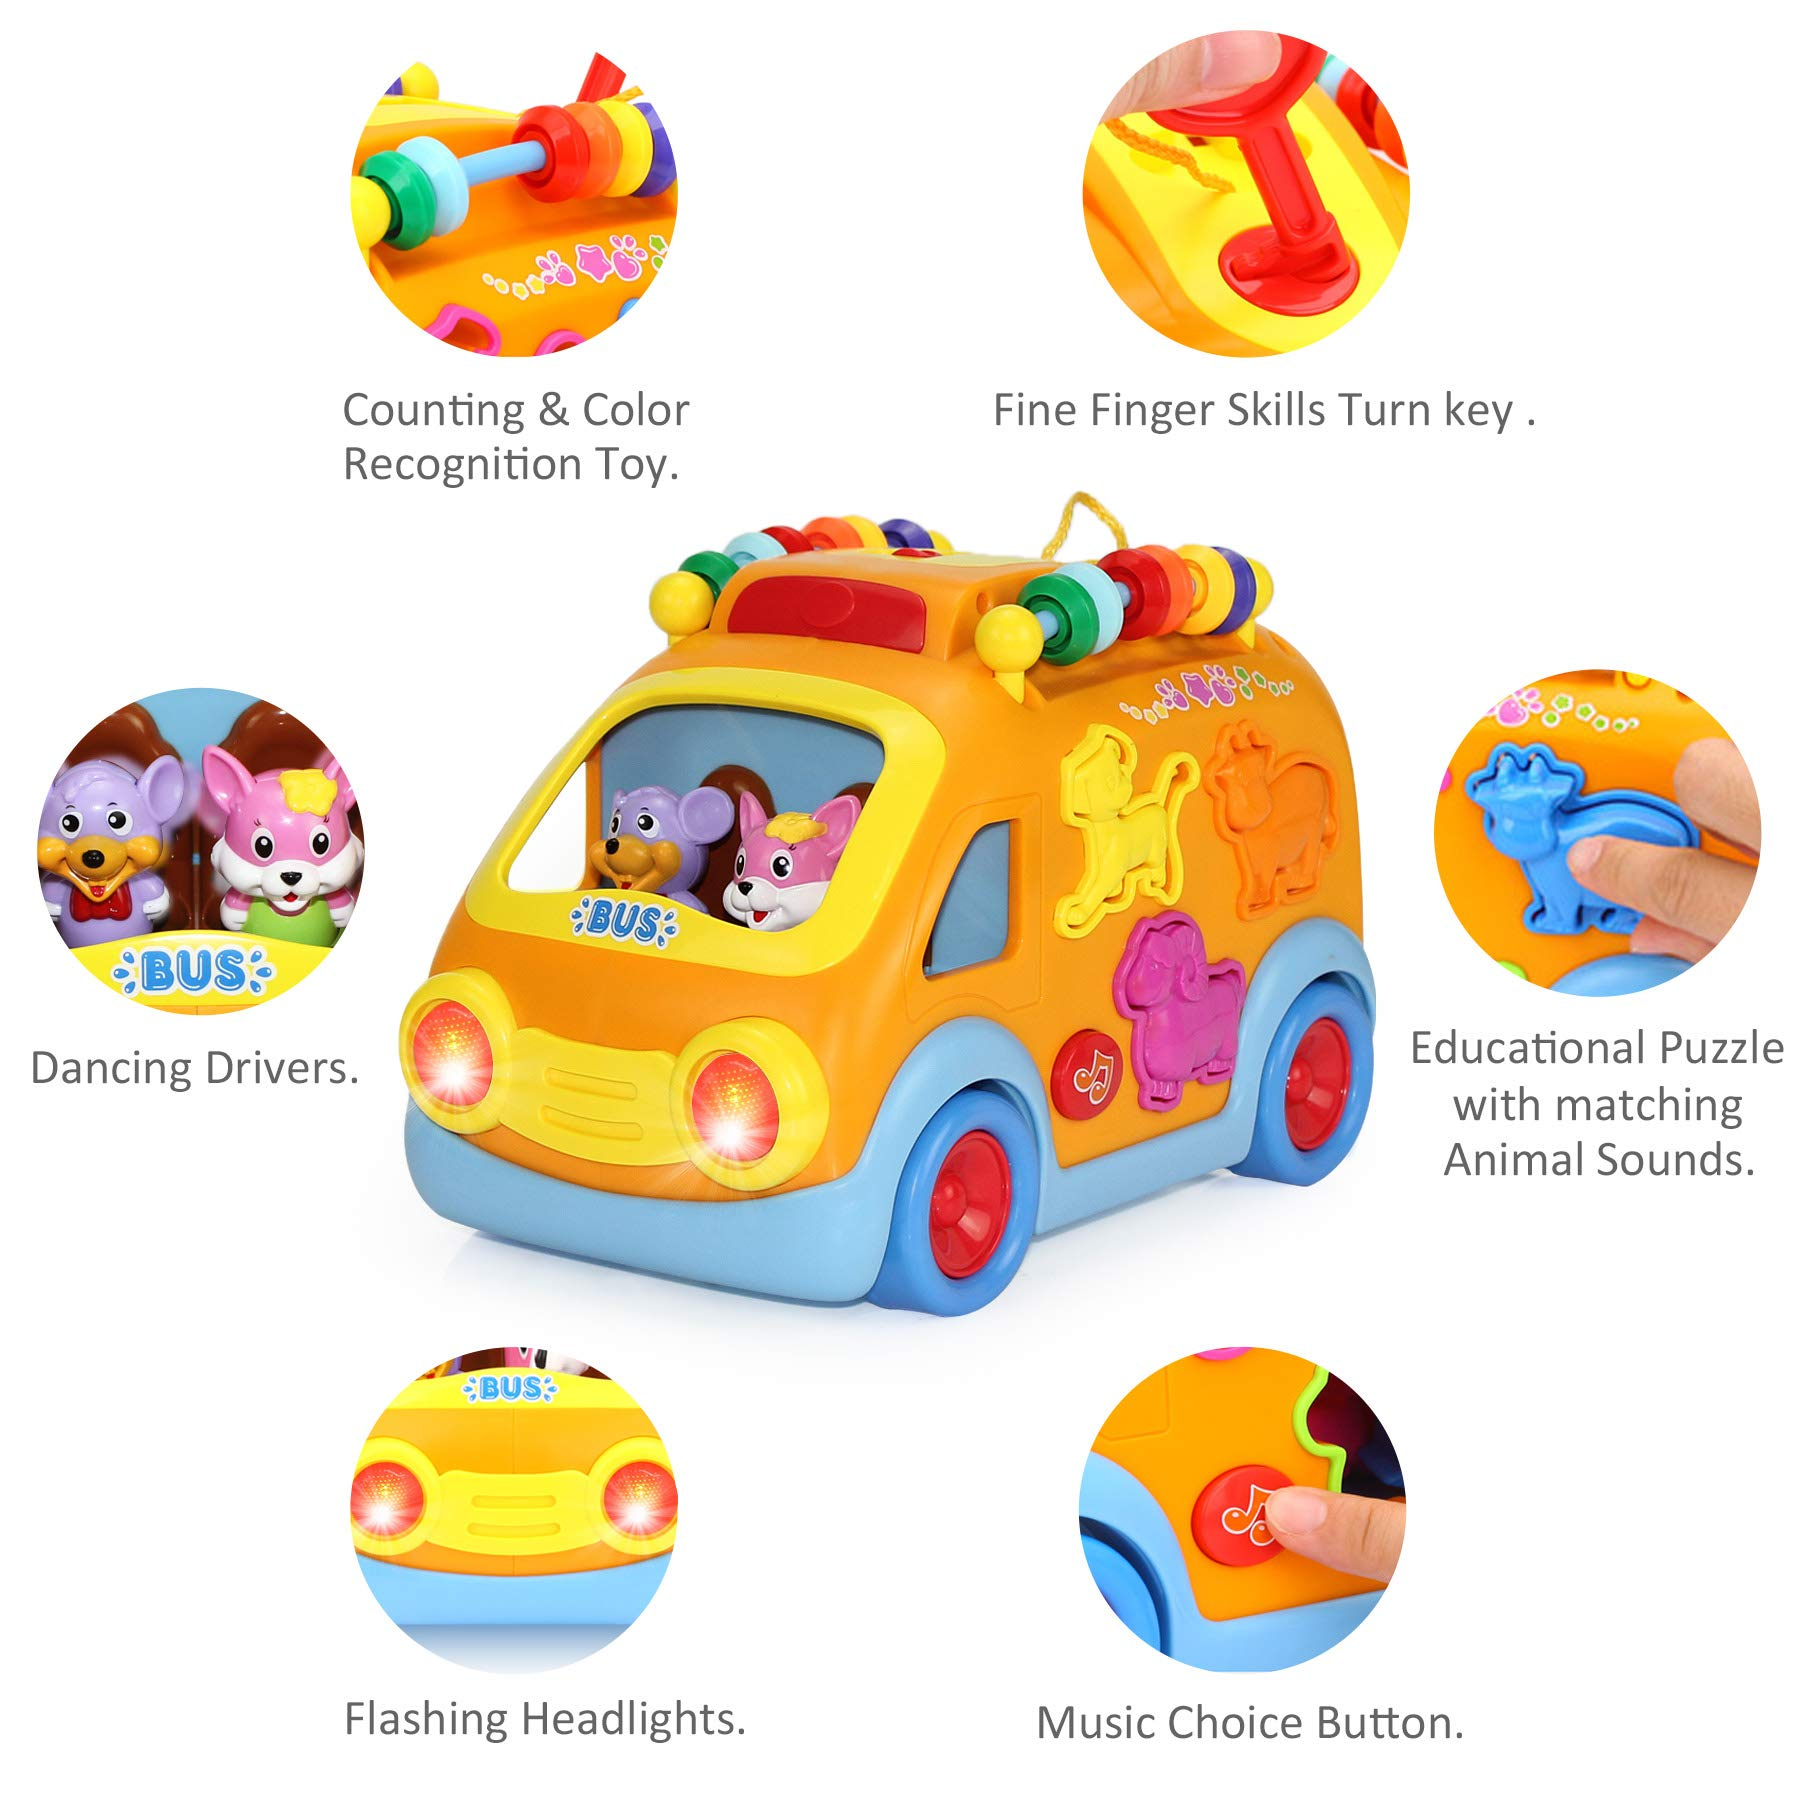 iPlay, iLearn Electronic Musical Bus, Baby Sensory Toy, 3D Animal Matching Car w/ Gear, Early Development, Learning, Educational Gift for 1, 2 Year Olds Girls Boys Toddlers Kids by iPlay, iLearn (Image #3)